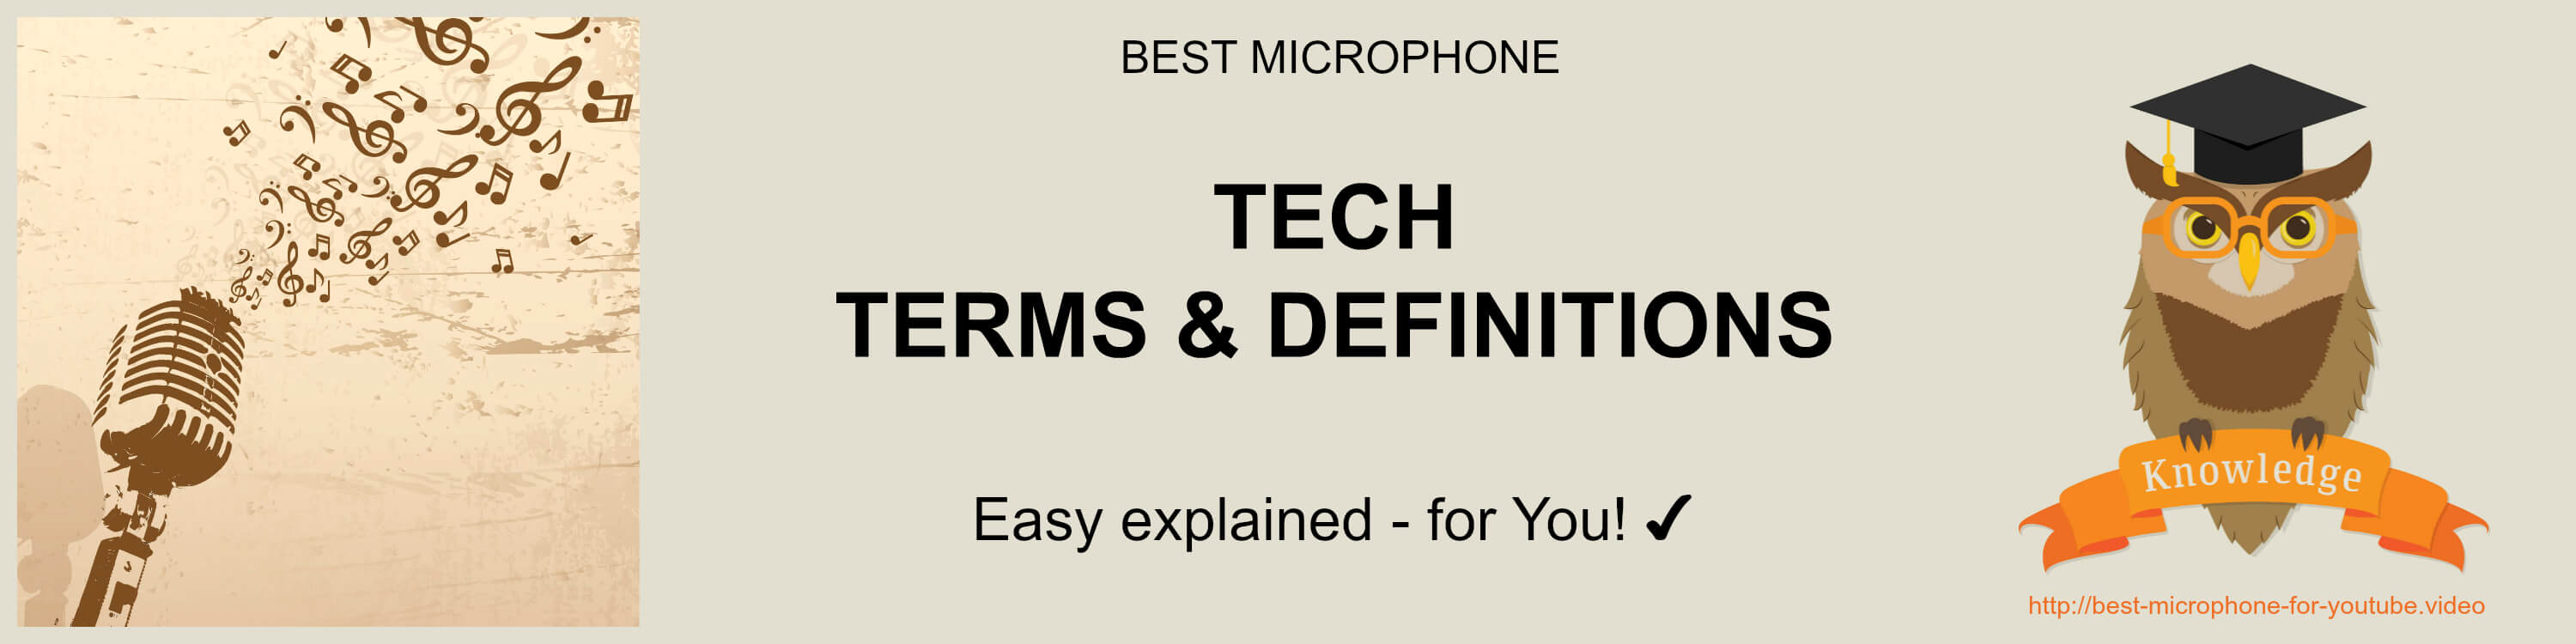 what is microphone? tech-terms-definitions-best-microphone-for-youtube